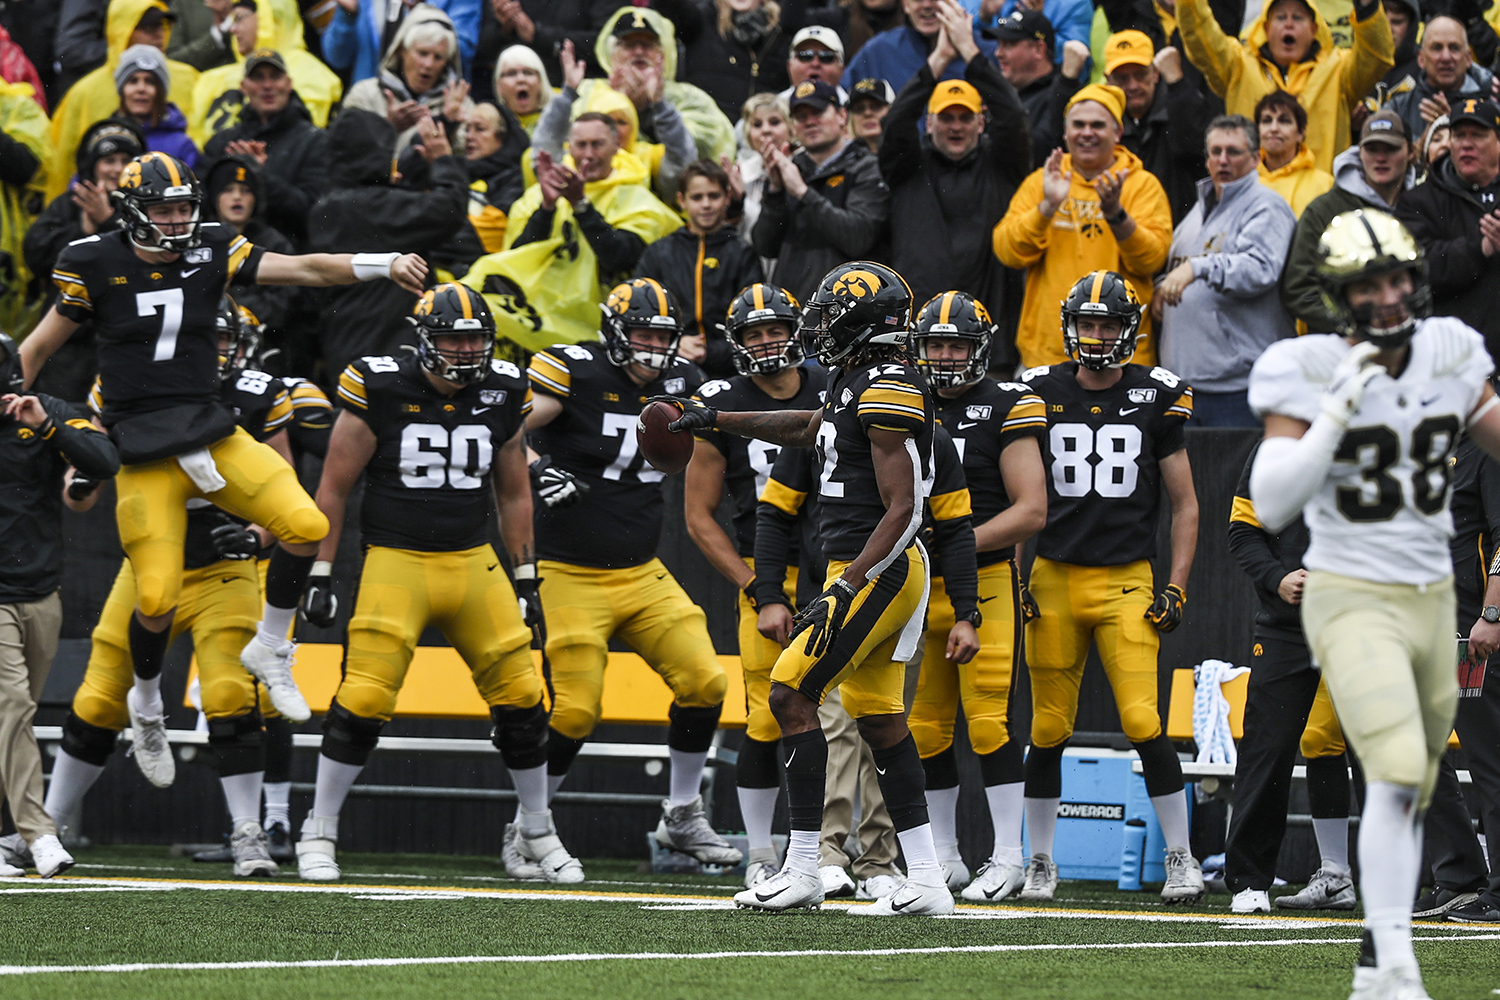 Iowa players react to wide receiver Brandon Smith's catch during the Iowa football game against Purdue at Kinnick Stadium on Saturday, Oct. 19, 2019. The Hawkeyes defeated the Boilermakers 26-20.